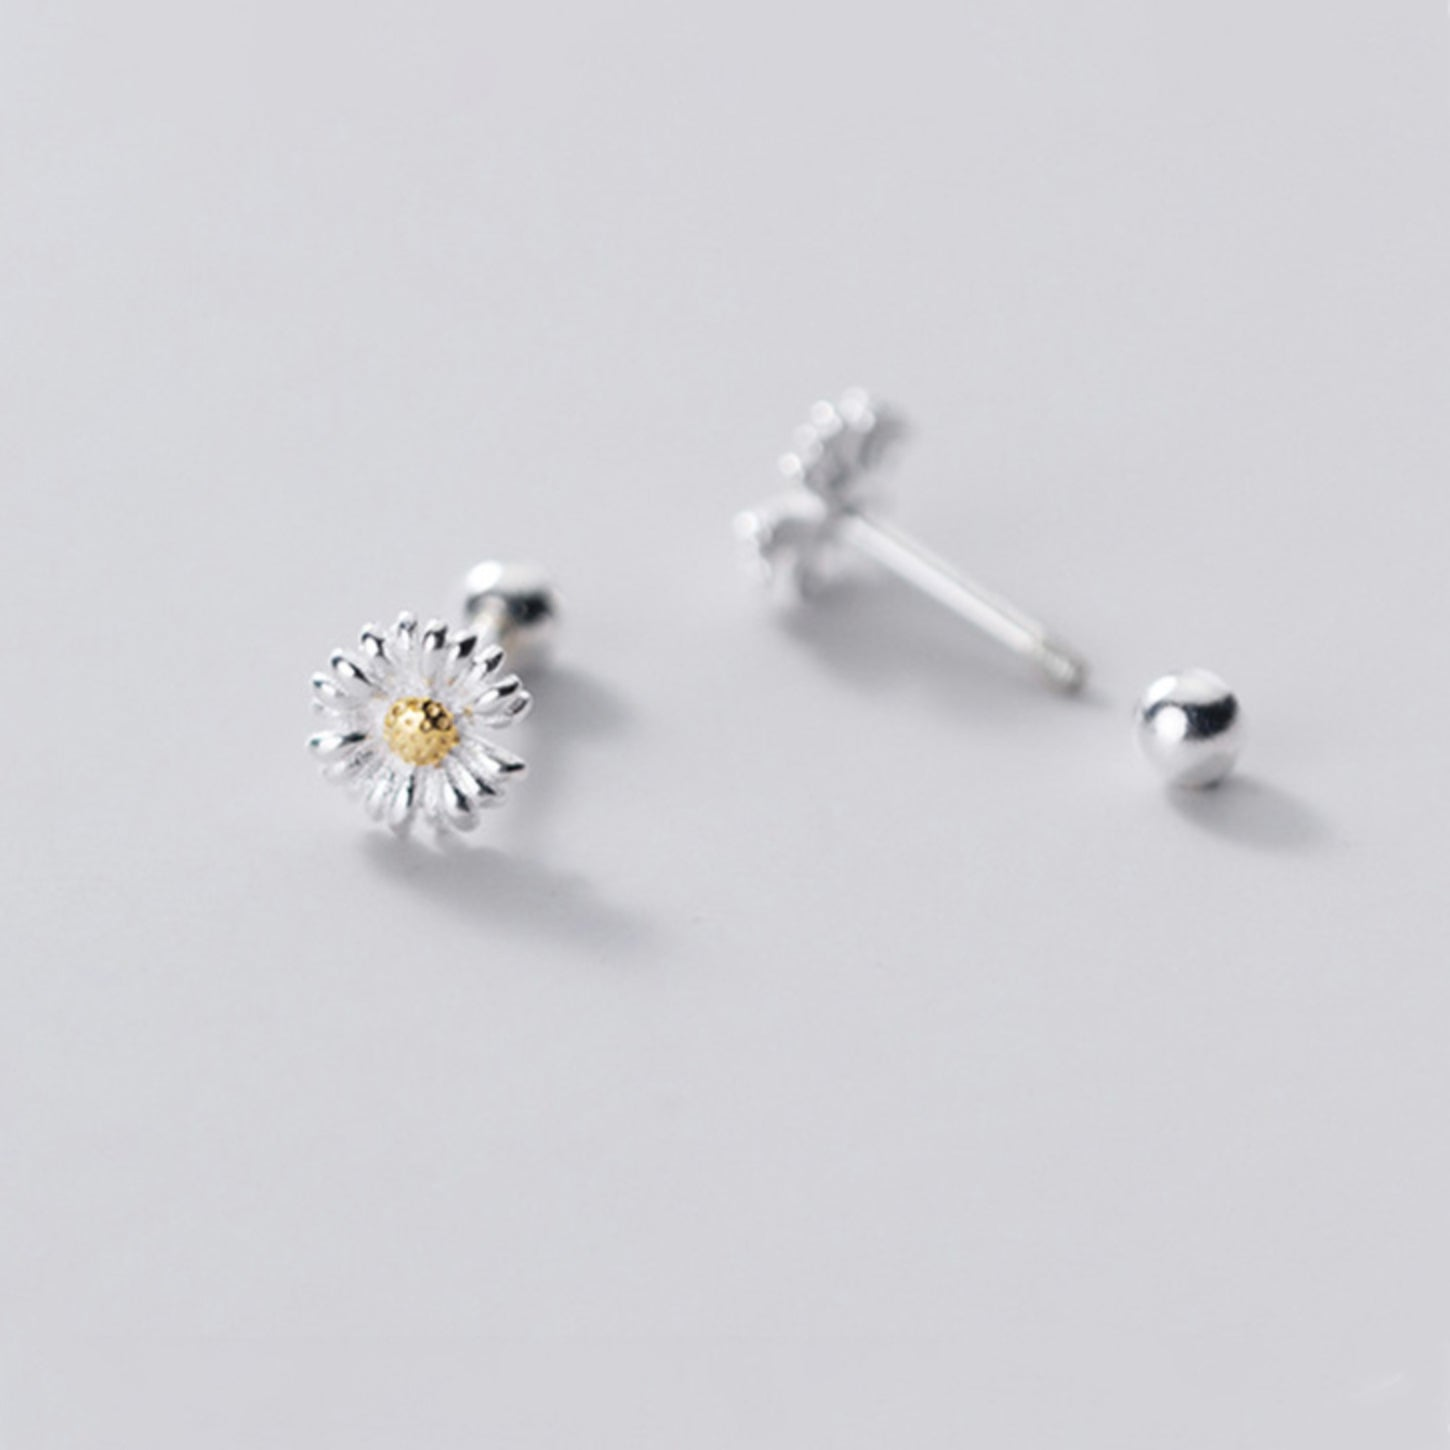 Tiny Daisy Flower Screw Sterling Silver Back Earrings